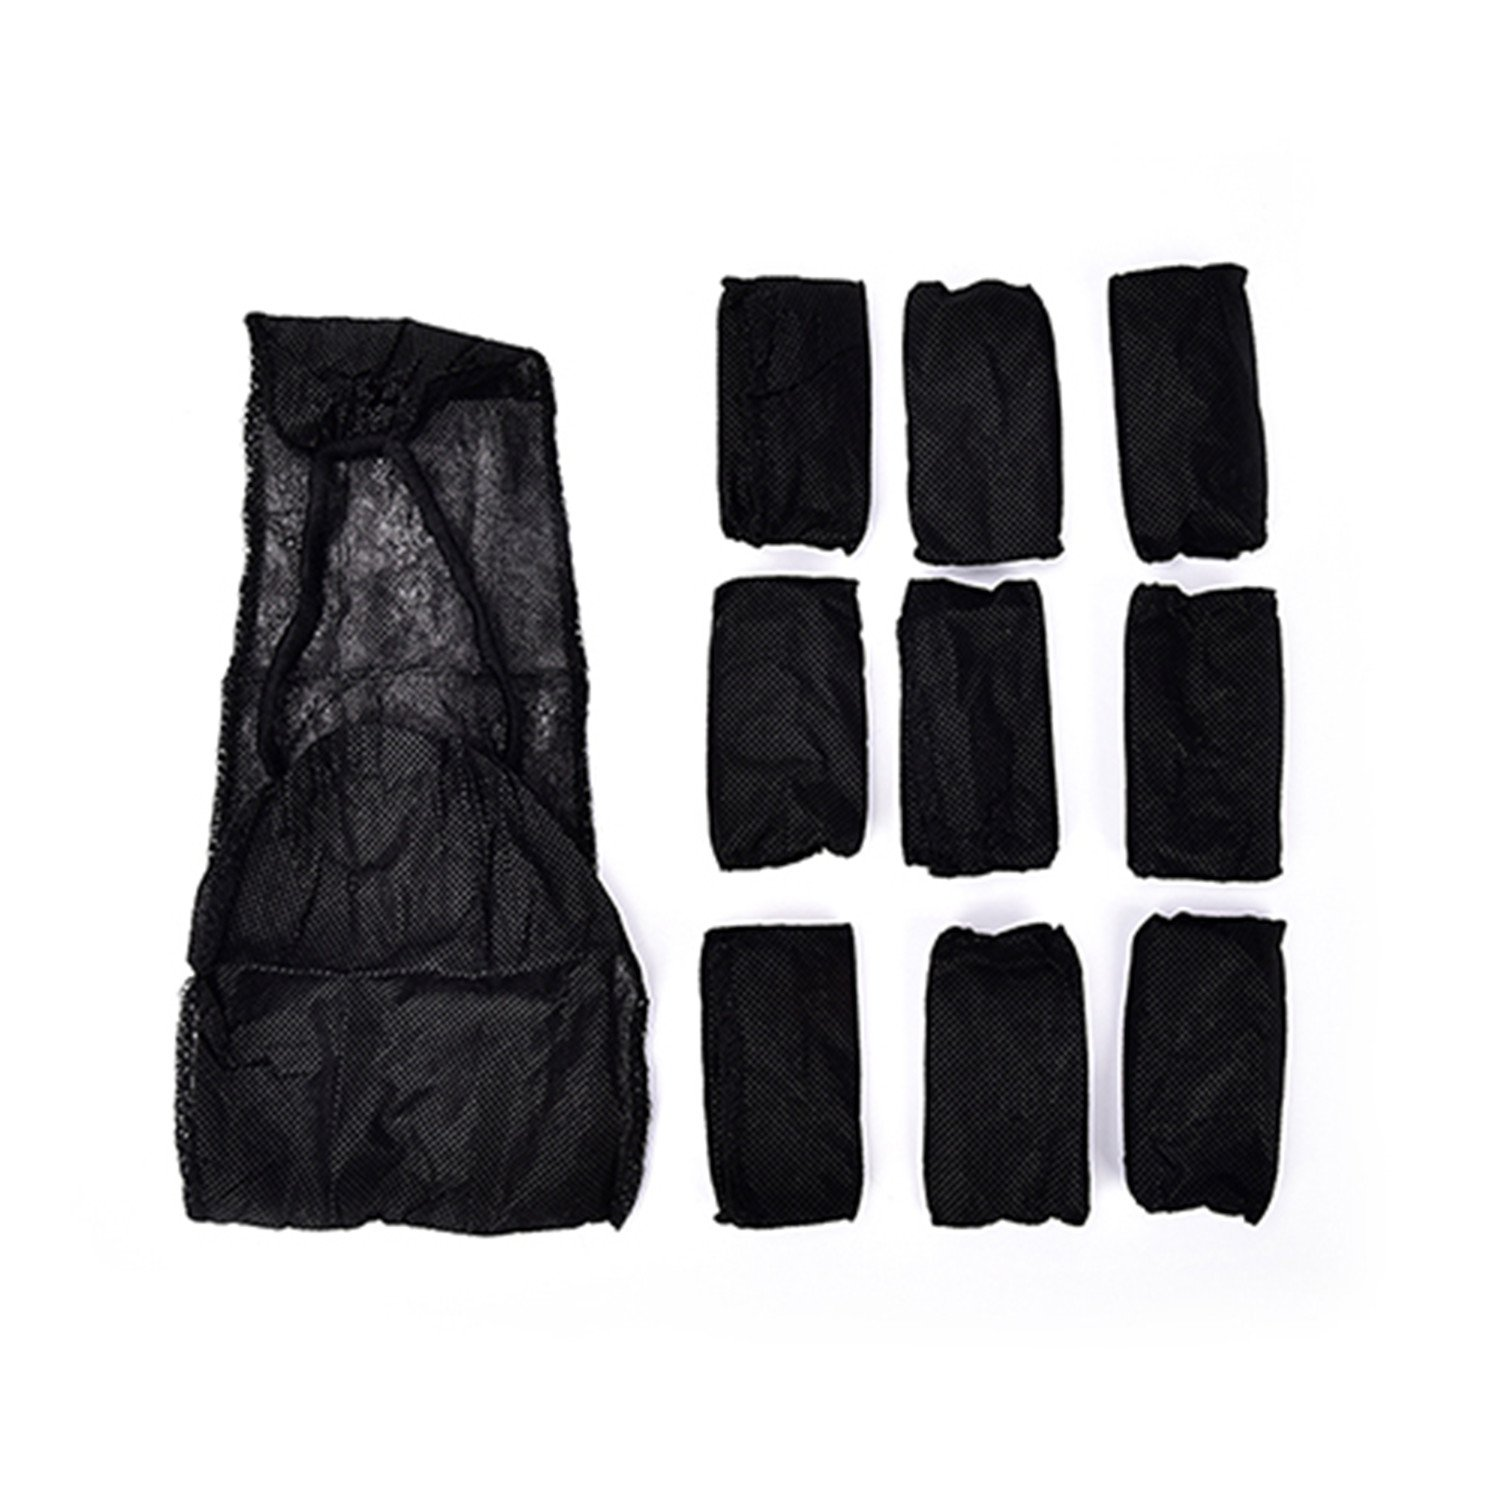 Madehappy 10Pcs/Lot Saloon Spa Travel Disposable Panties Underwear T-Back Hot Black One Size